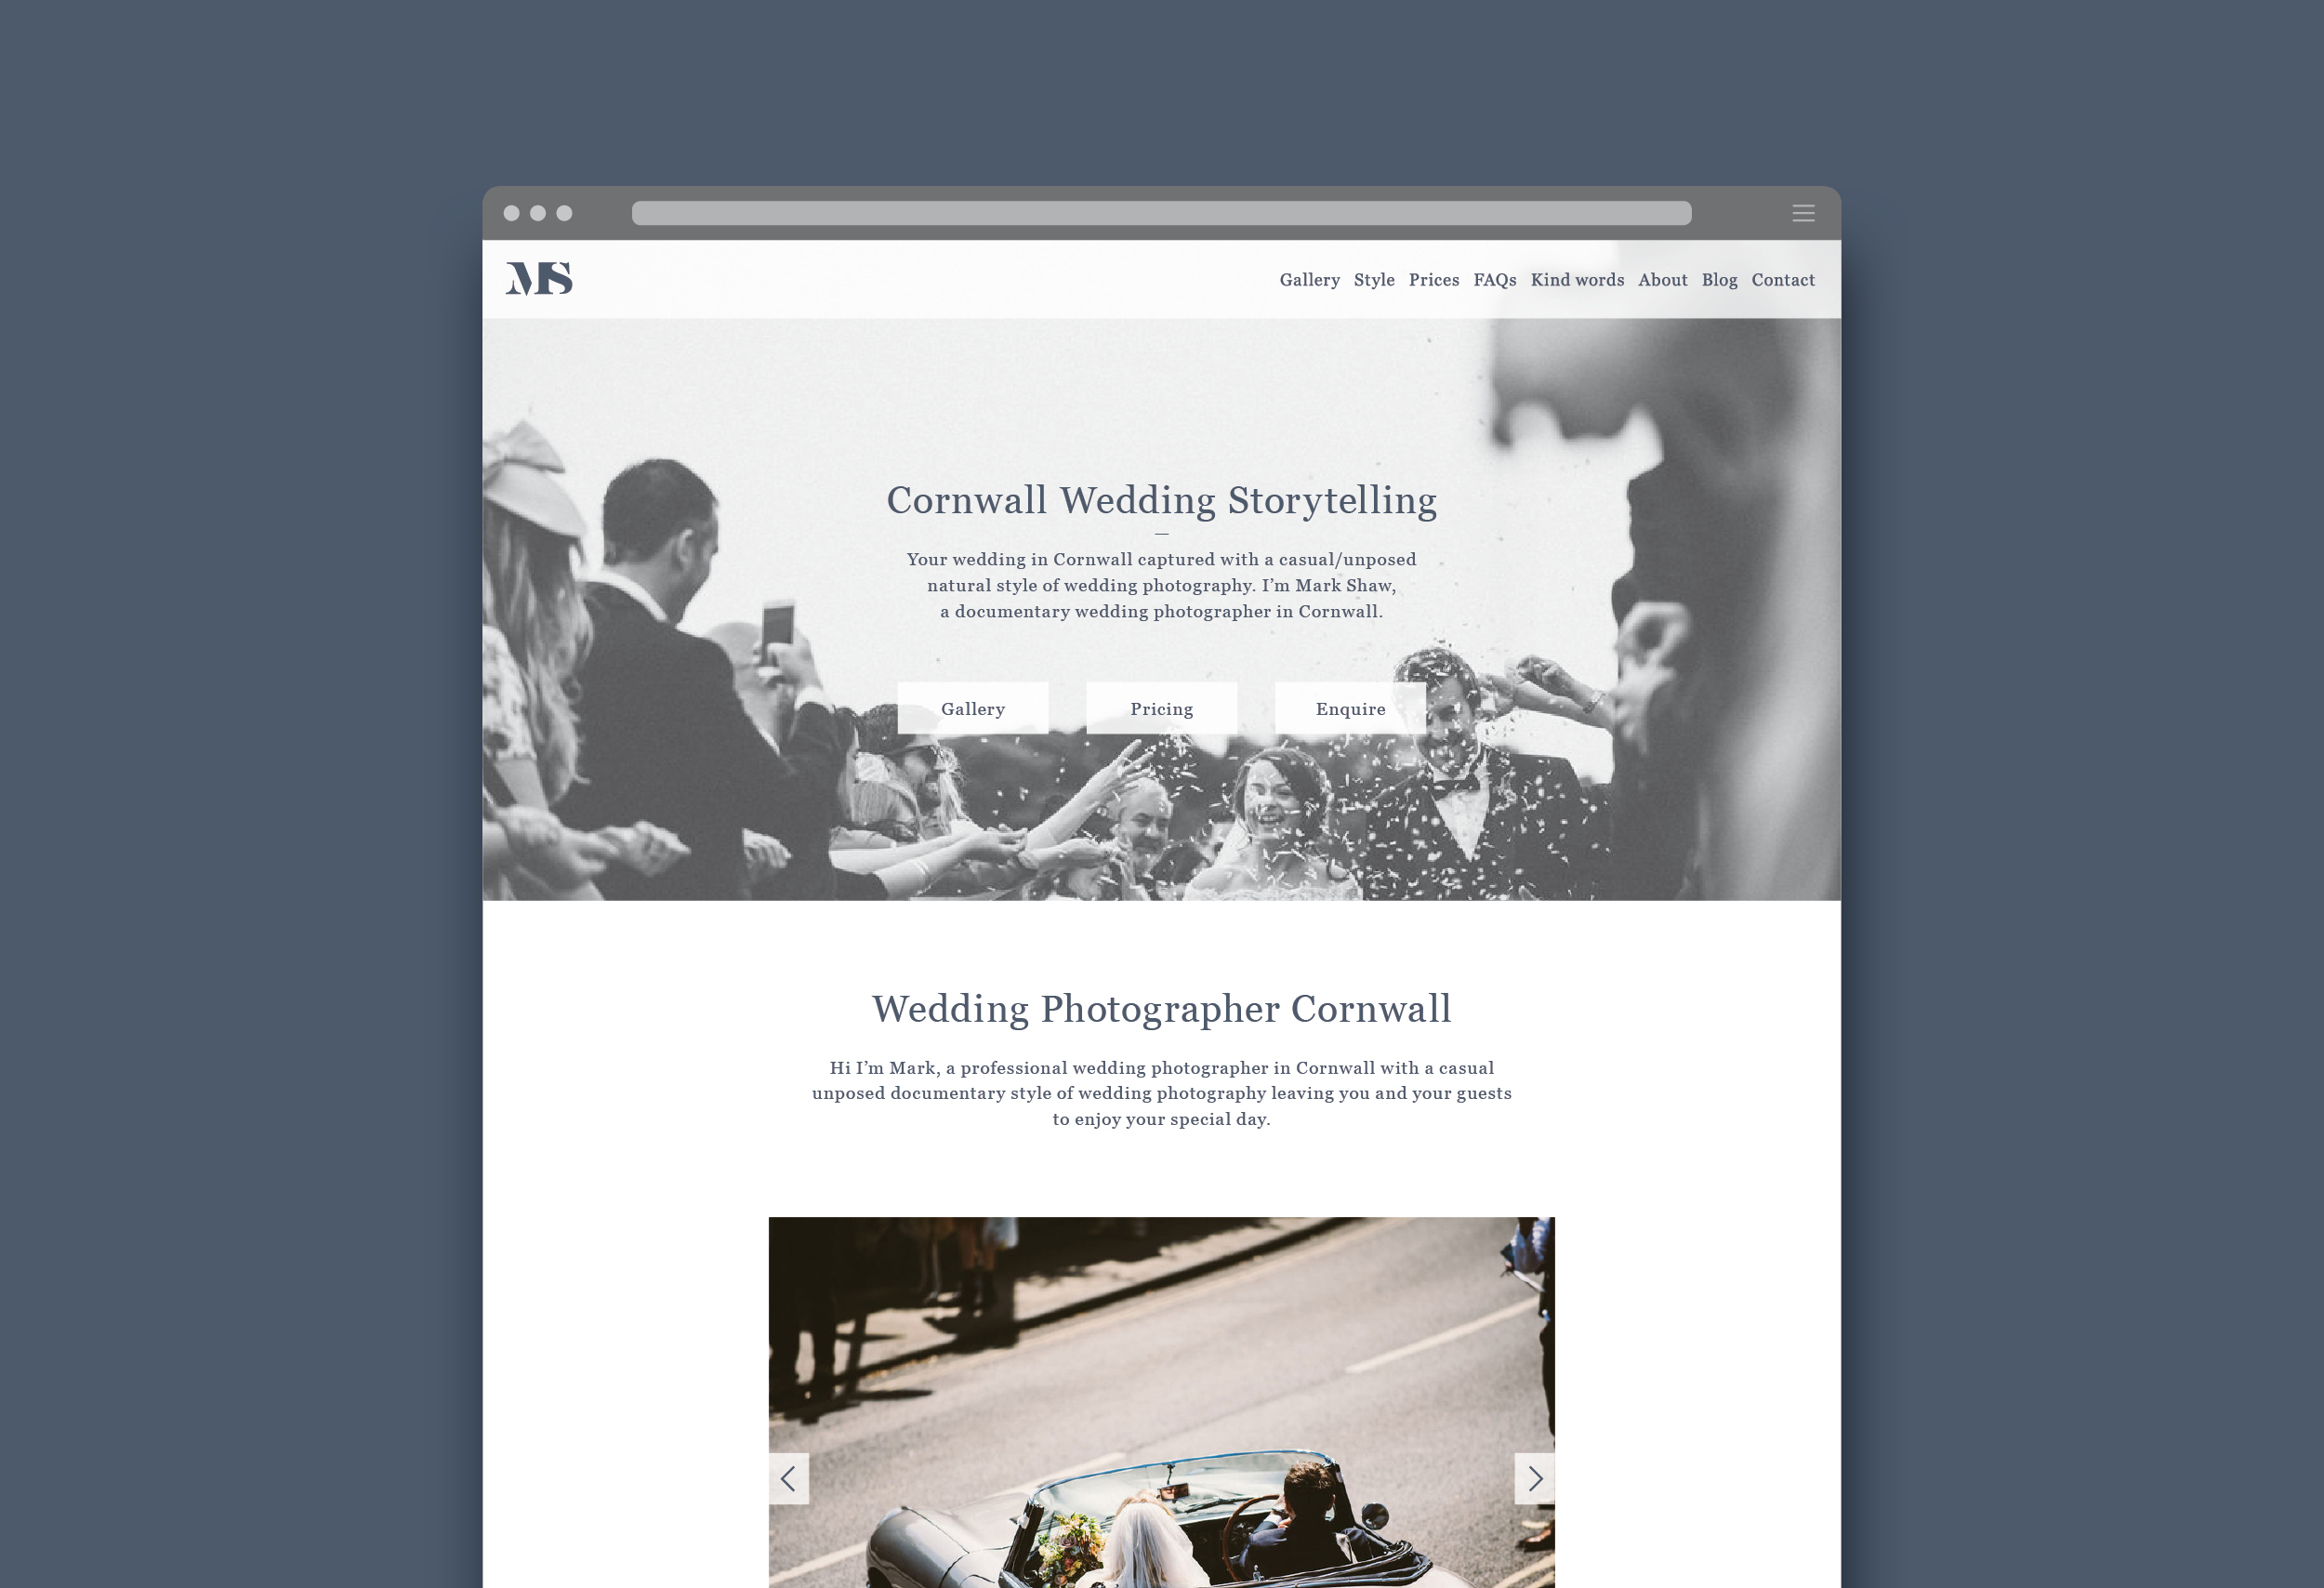 Mark_Shaw_Wedding_Photographer_identity_design_Alan_Clarke-Symonds_graphic_design_project_responsive website_homepage.jpg